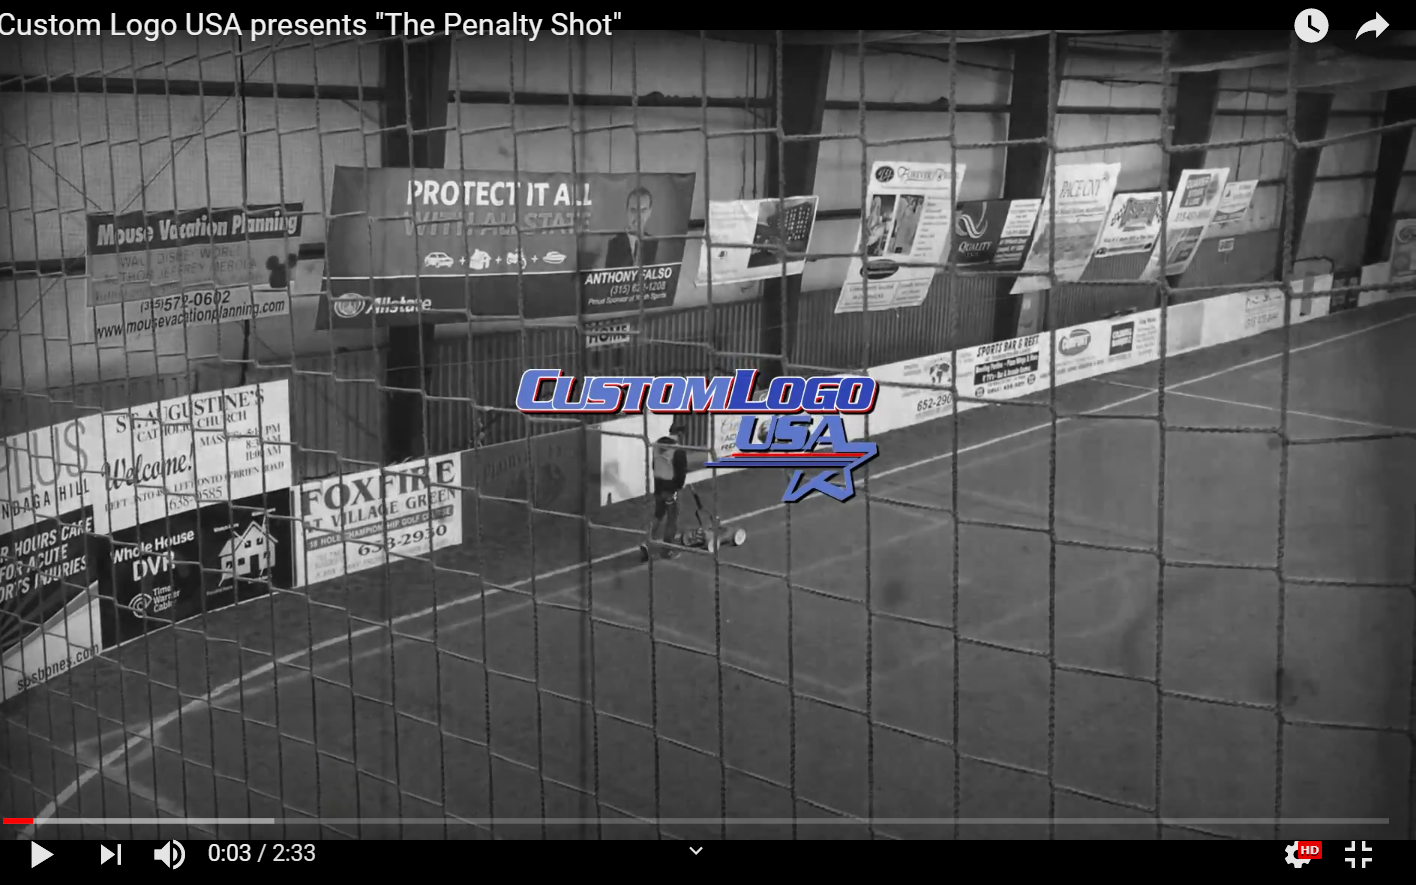 The Penalty Shot